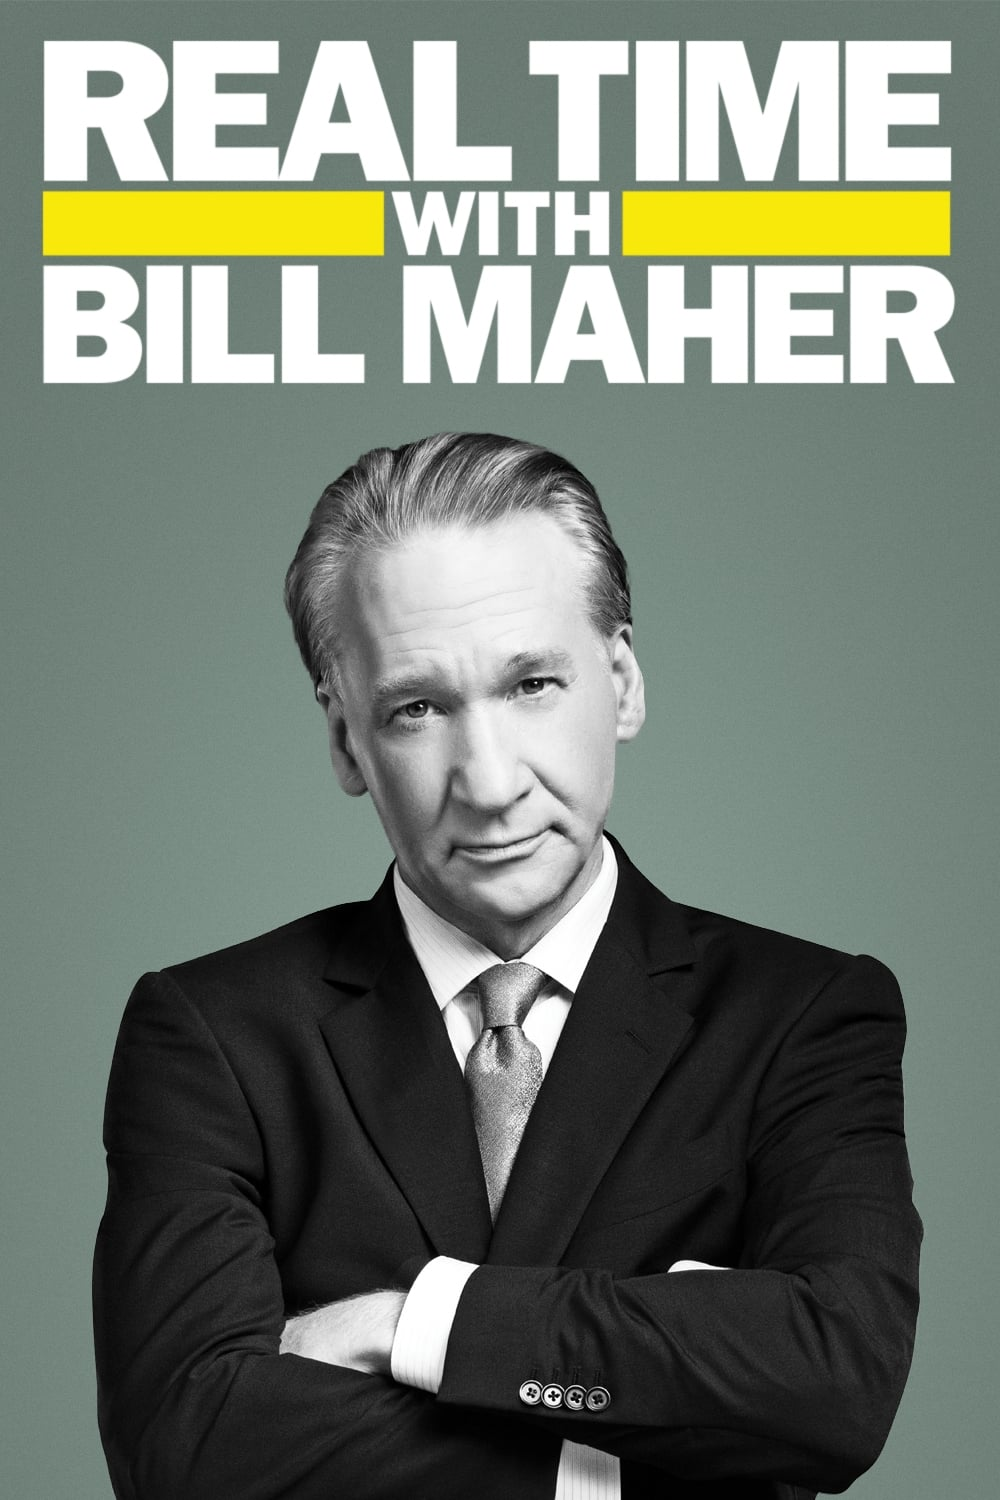 image for Real Time with Bill Maher